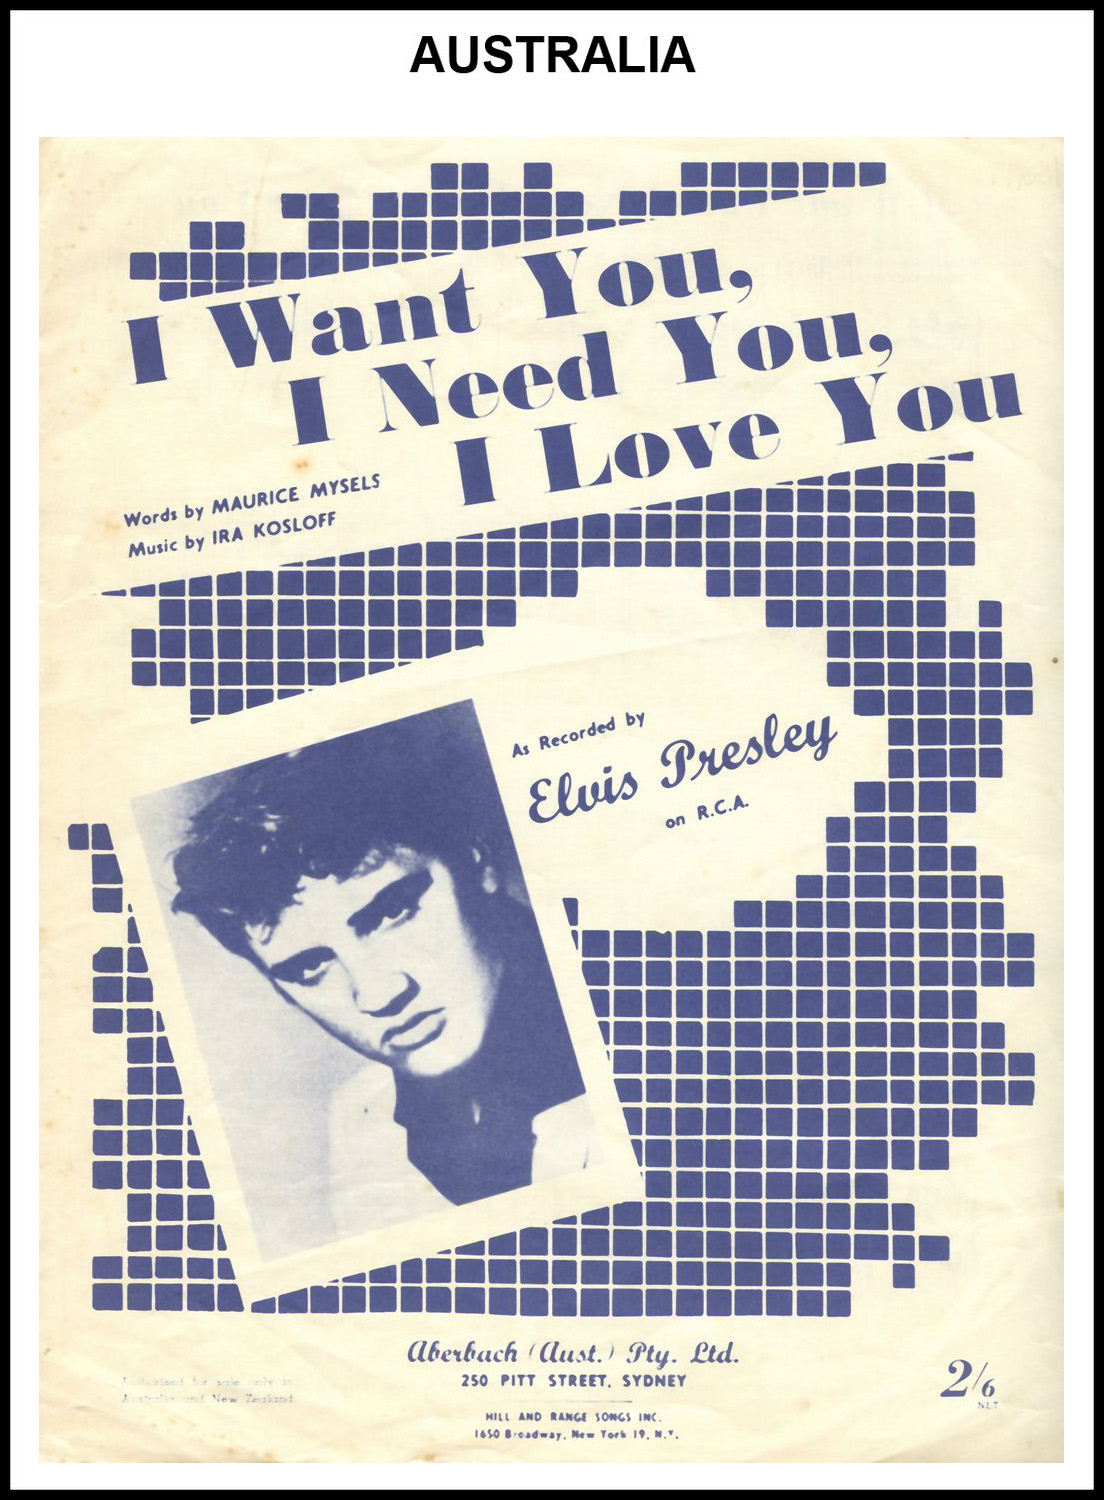 1956 - I Want You, I Need You, I Love You (Australia) 1 (CHRIS GILES COLLECTION)